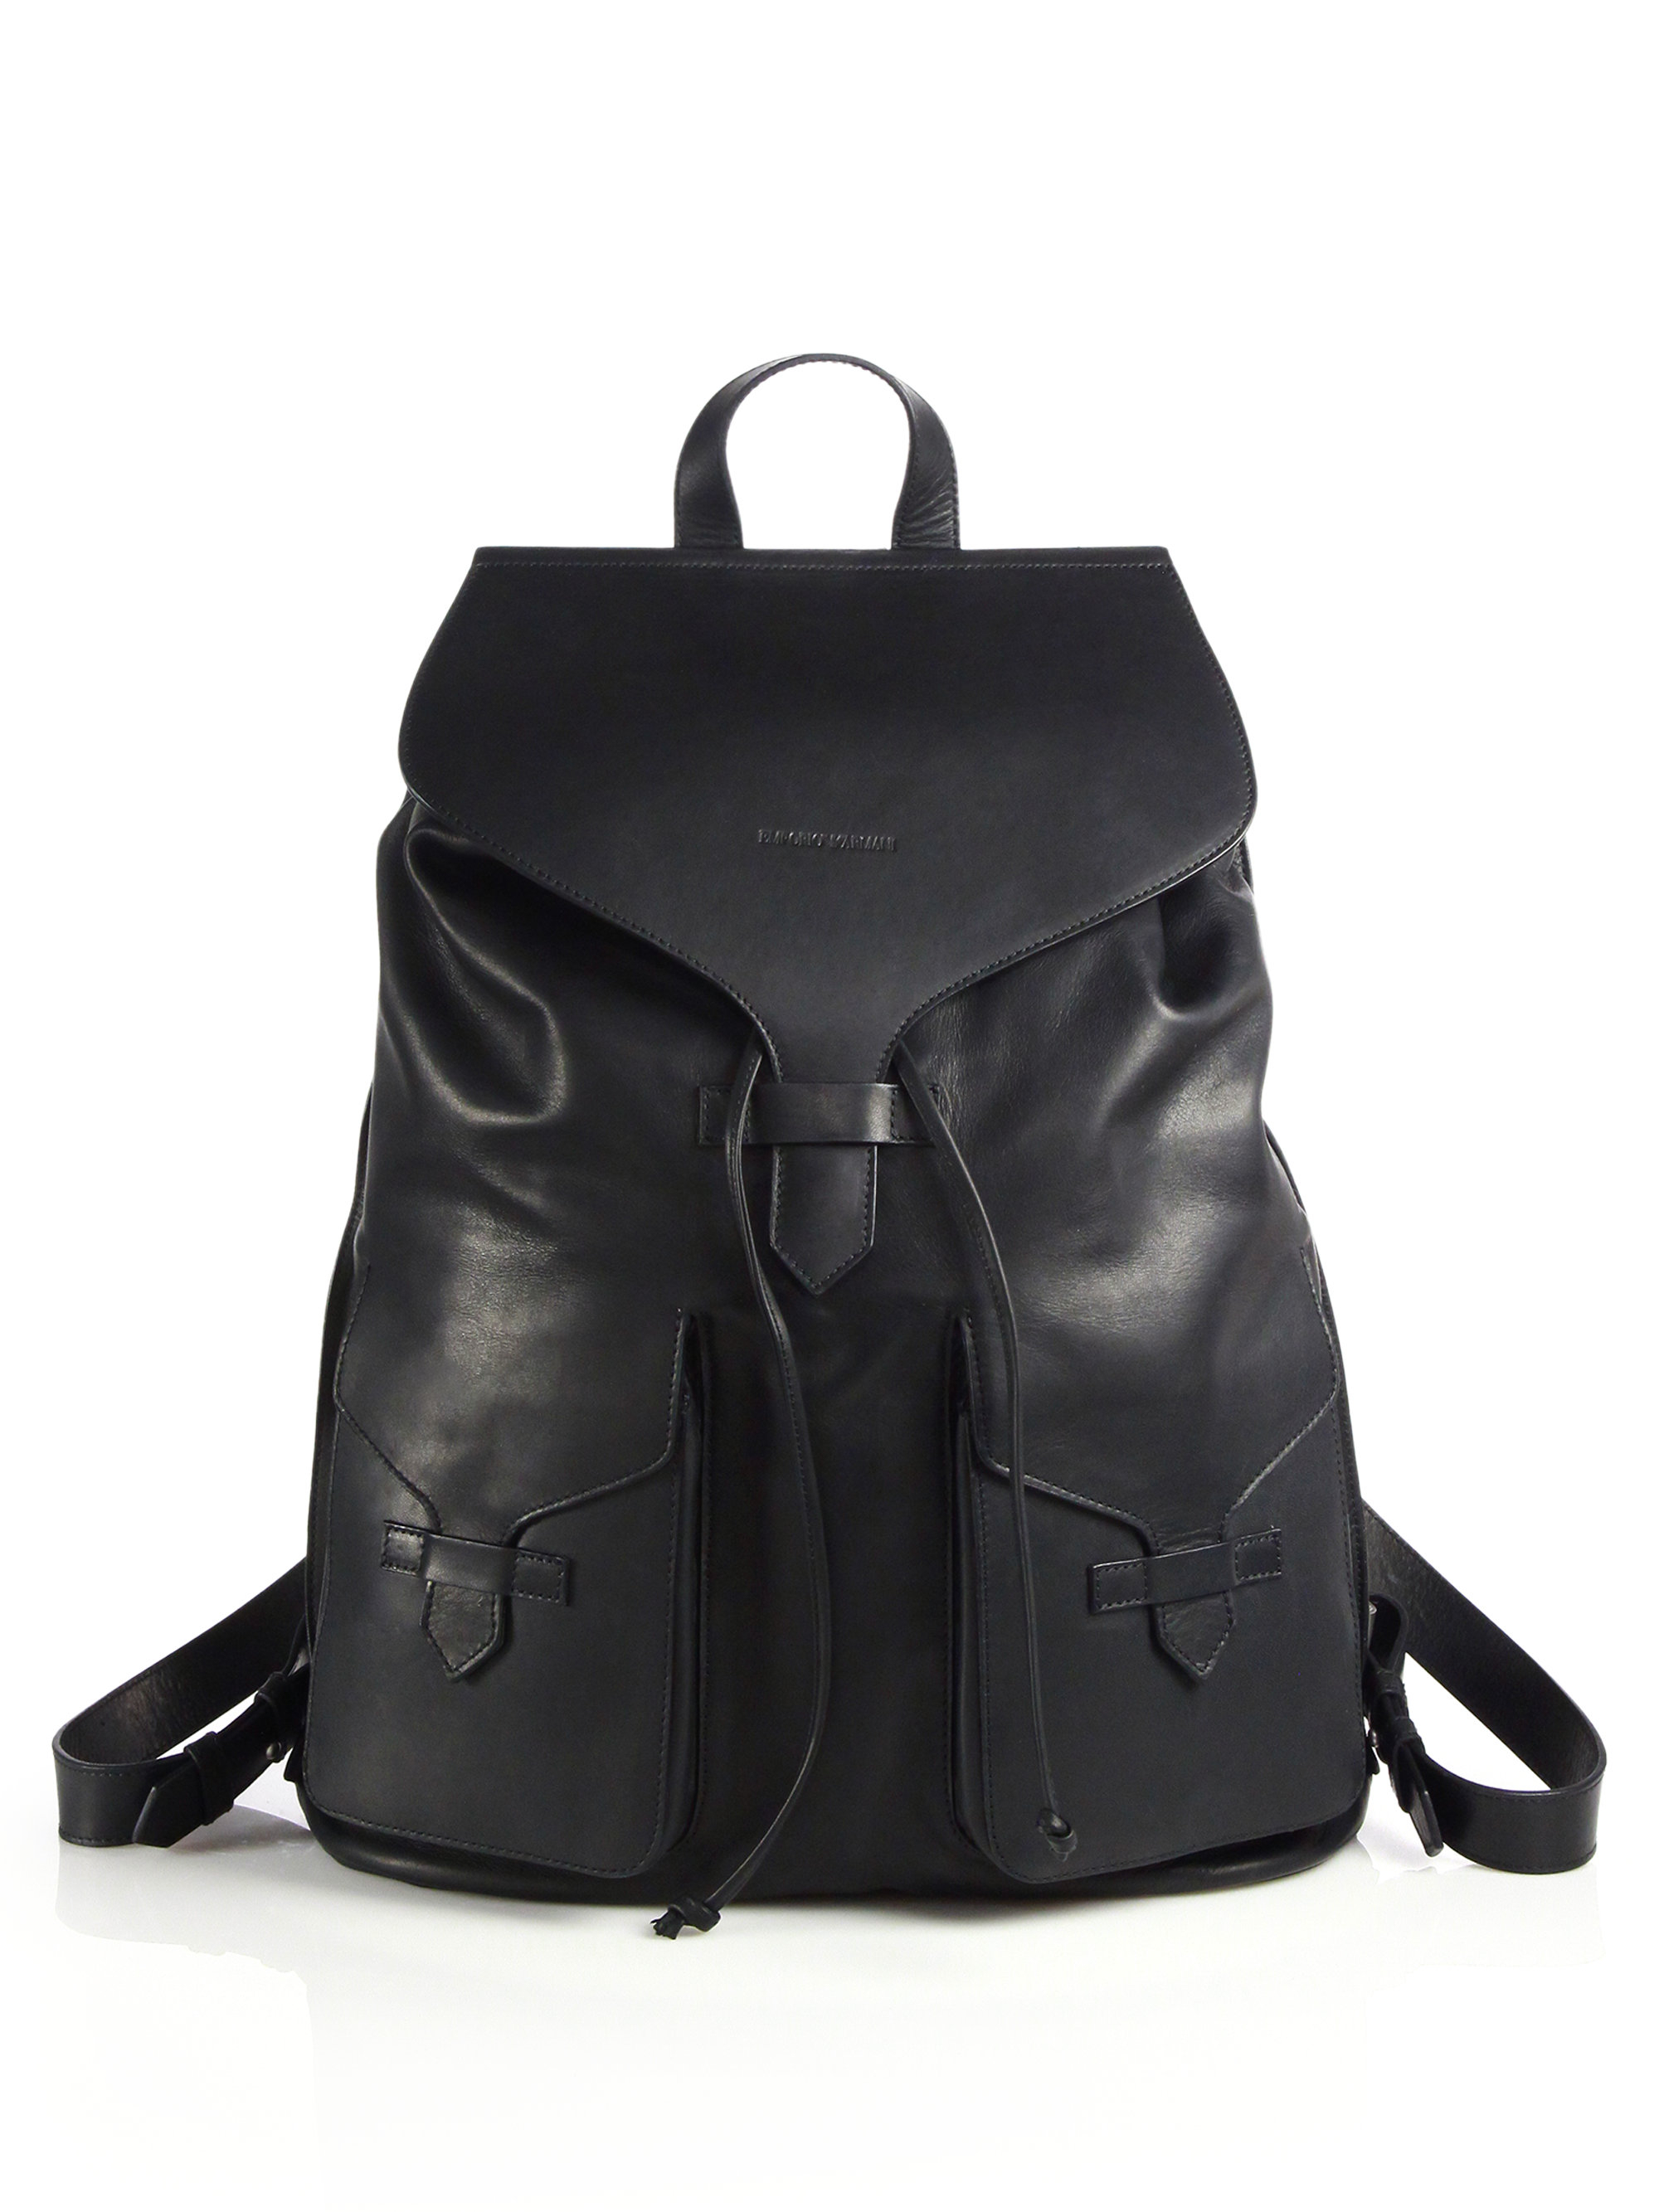 Designer Leather Backpacks Mgqb7MxU